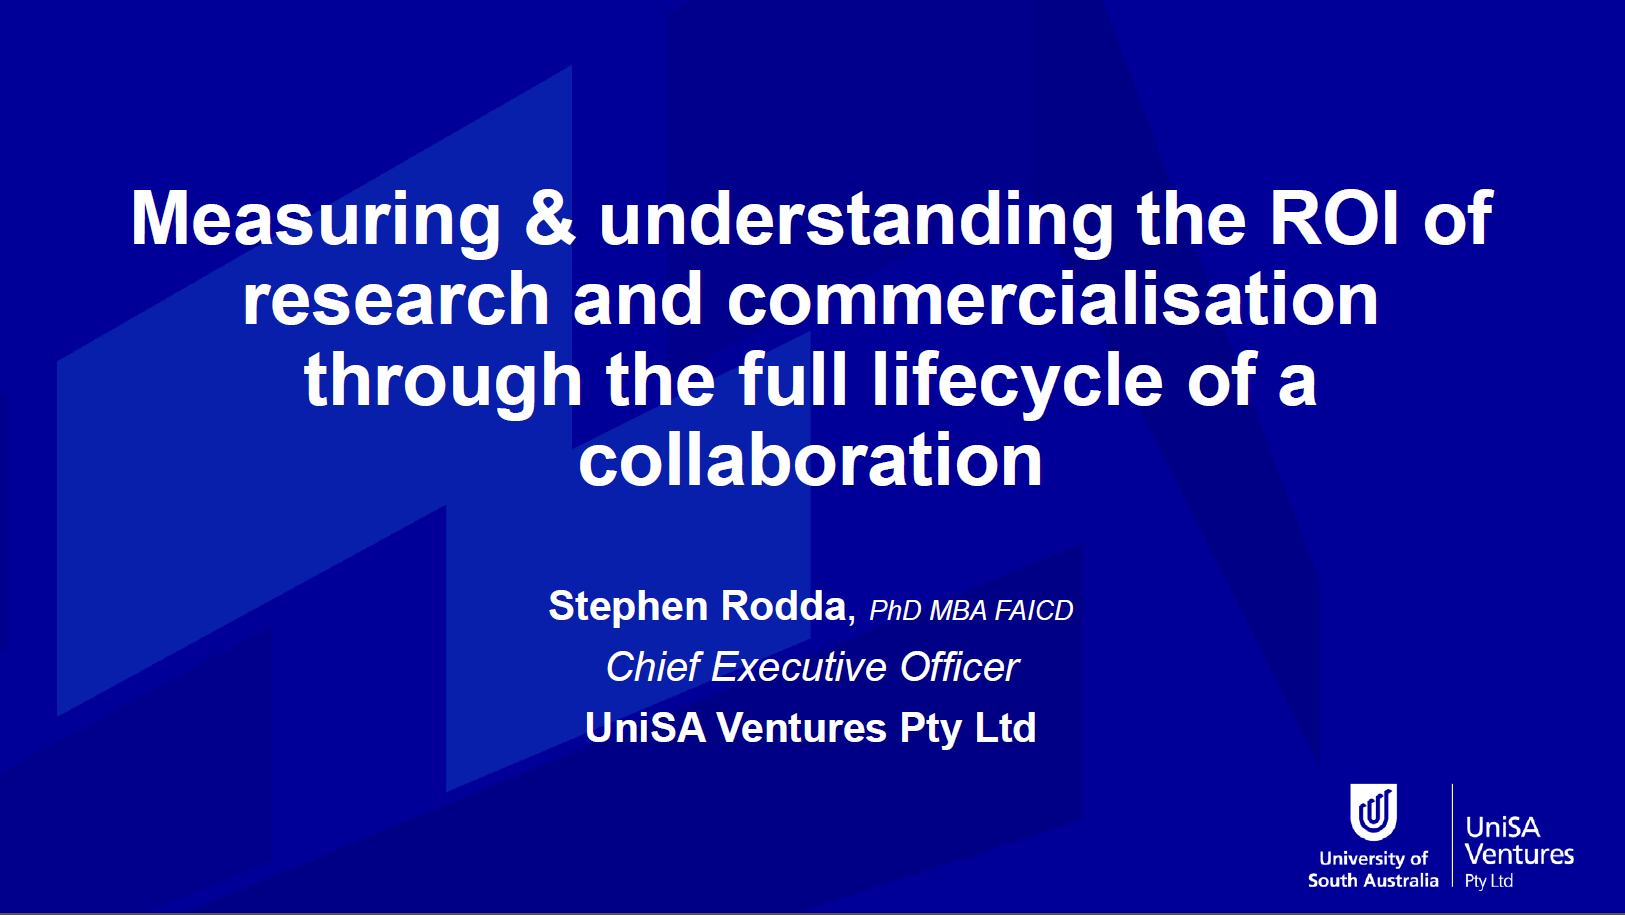 Measuring & Understanding The ROI of Research and Commercialisation Through the Full Lifecycle of a Collaboration